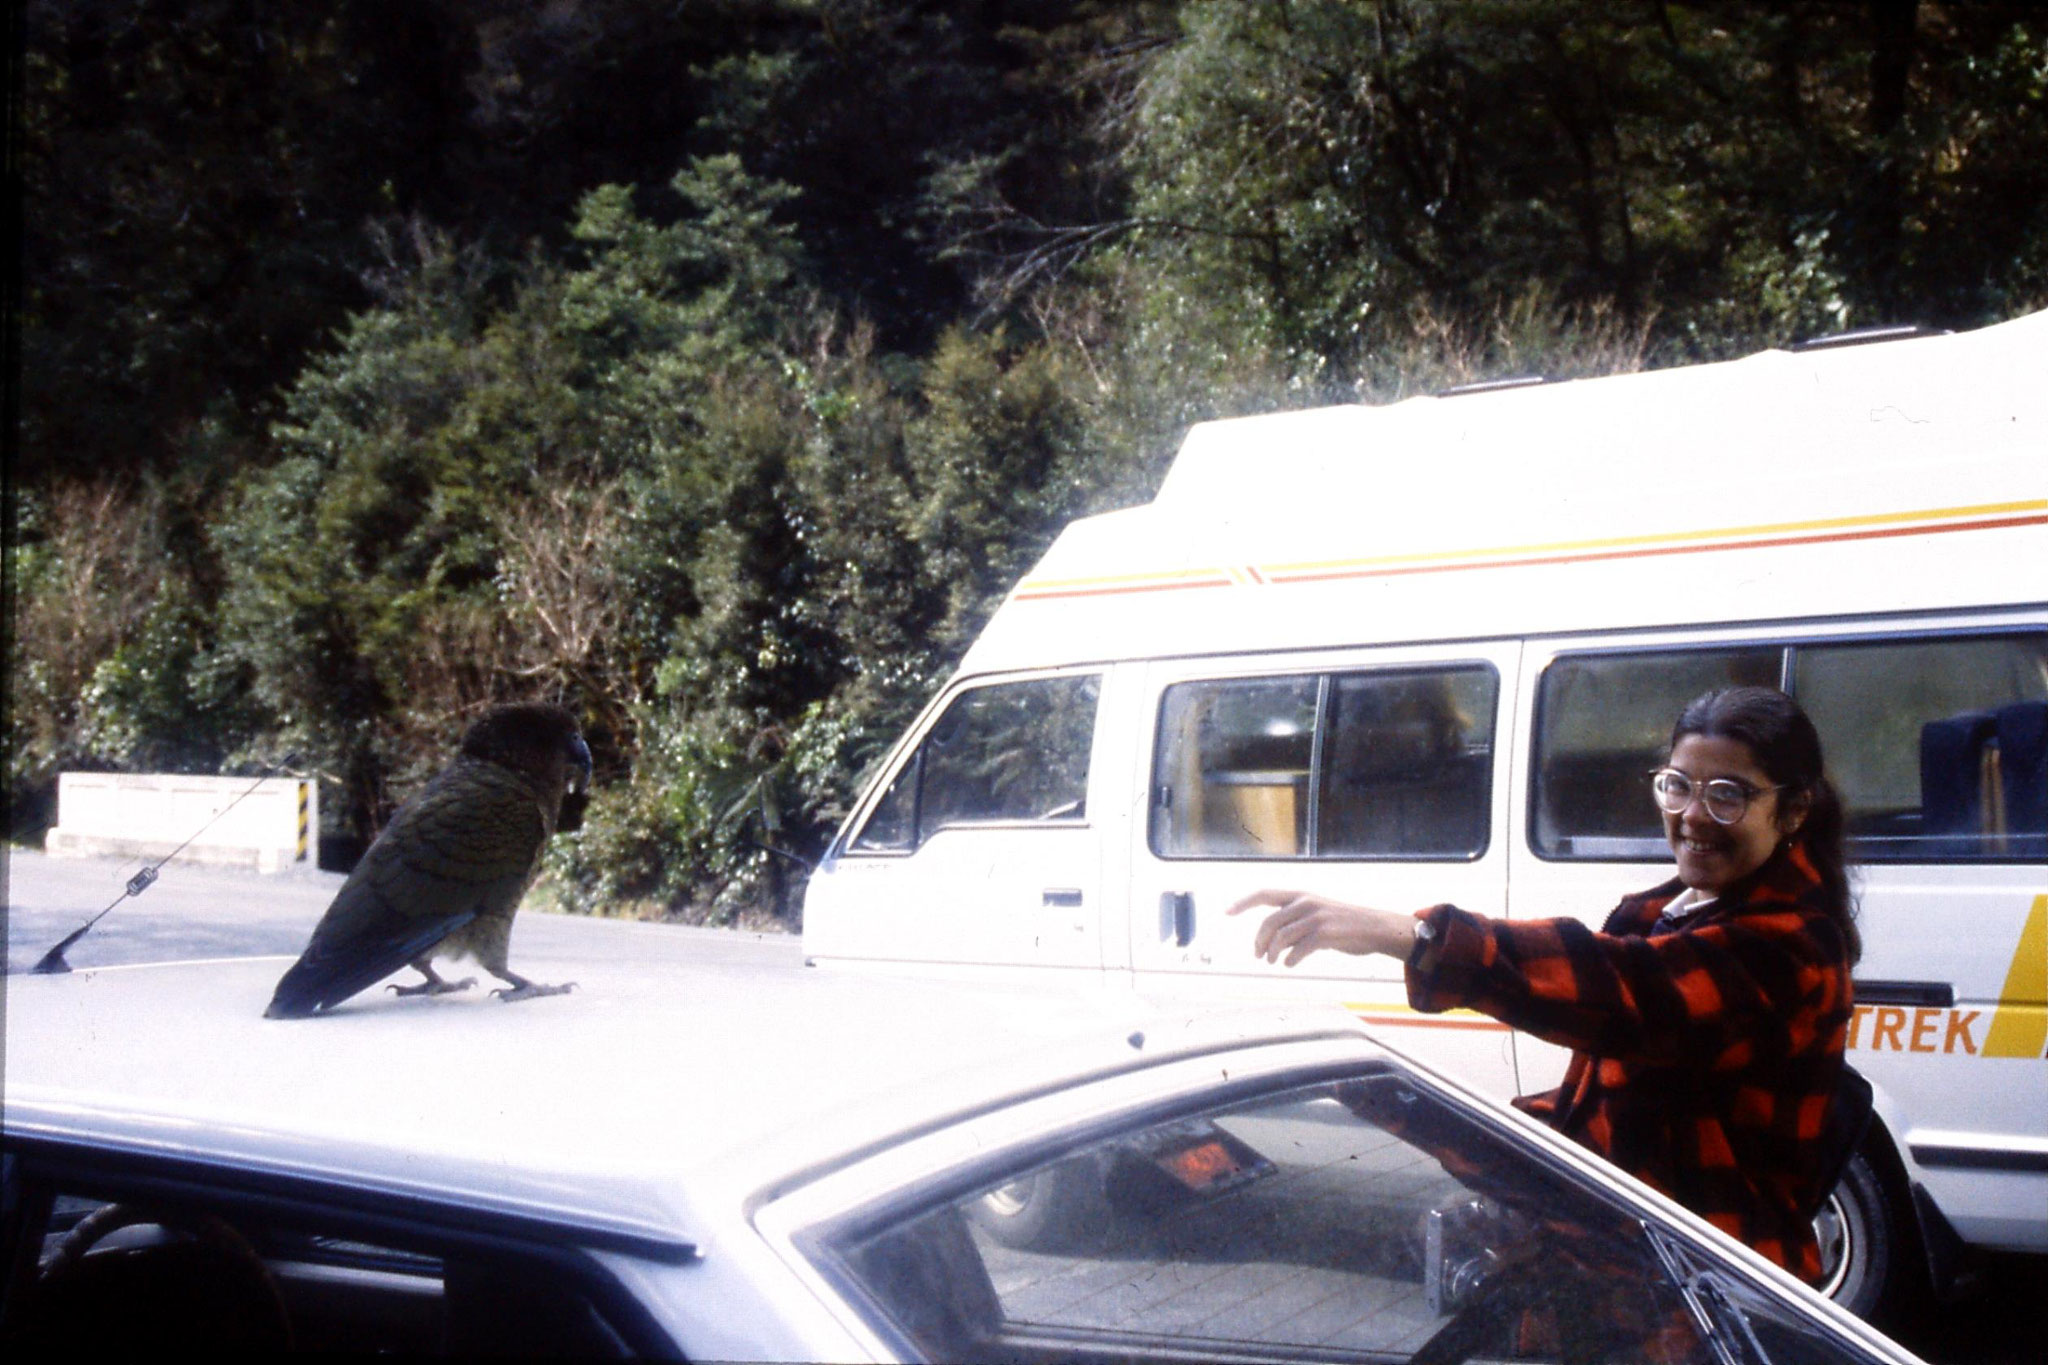 15/8/1990: 6: Kea on car